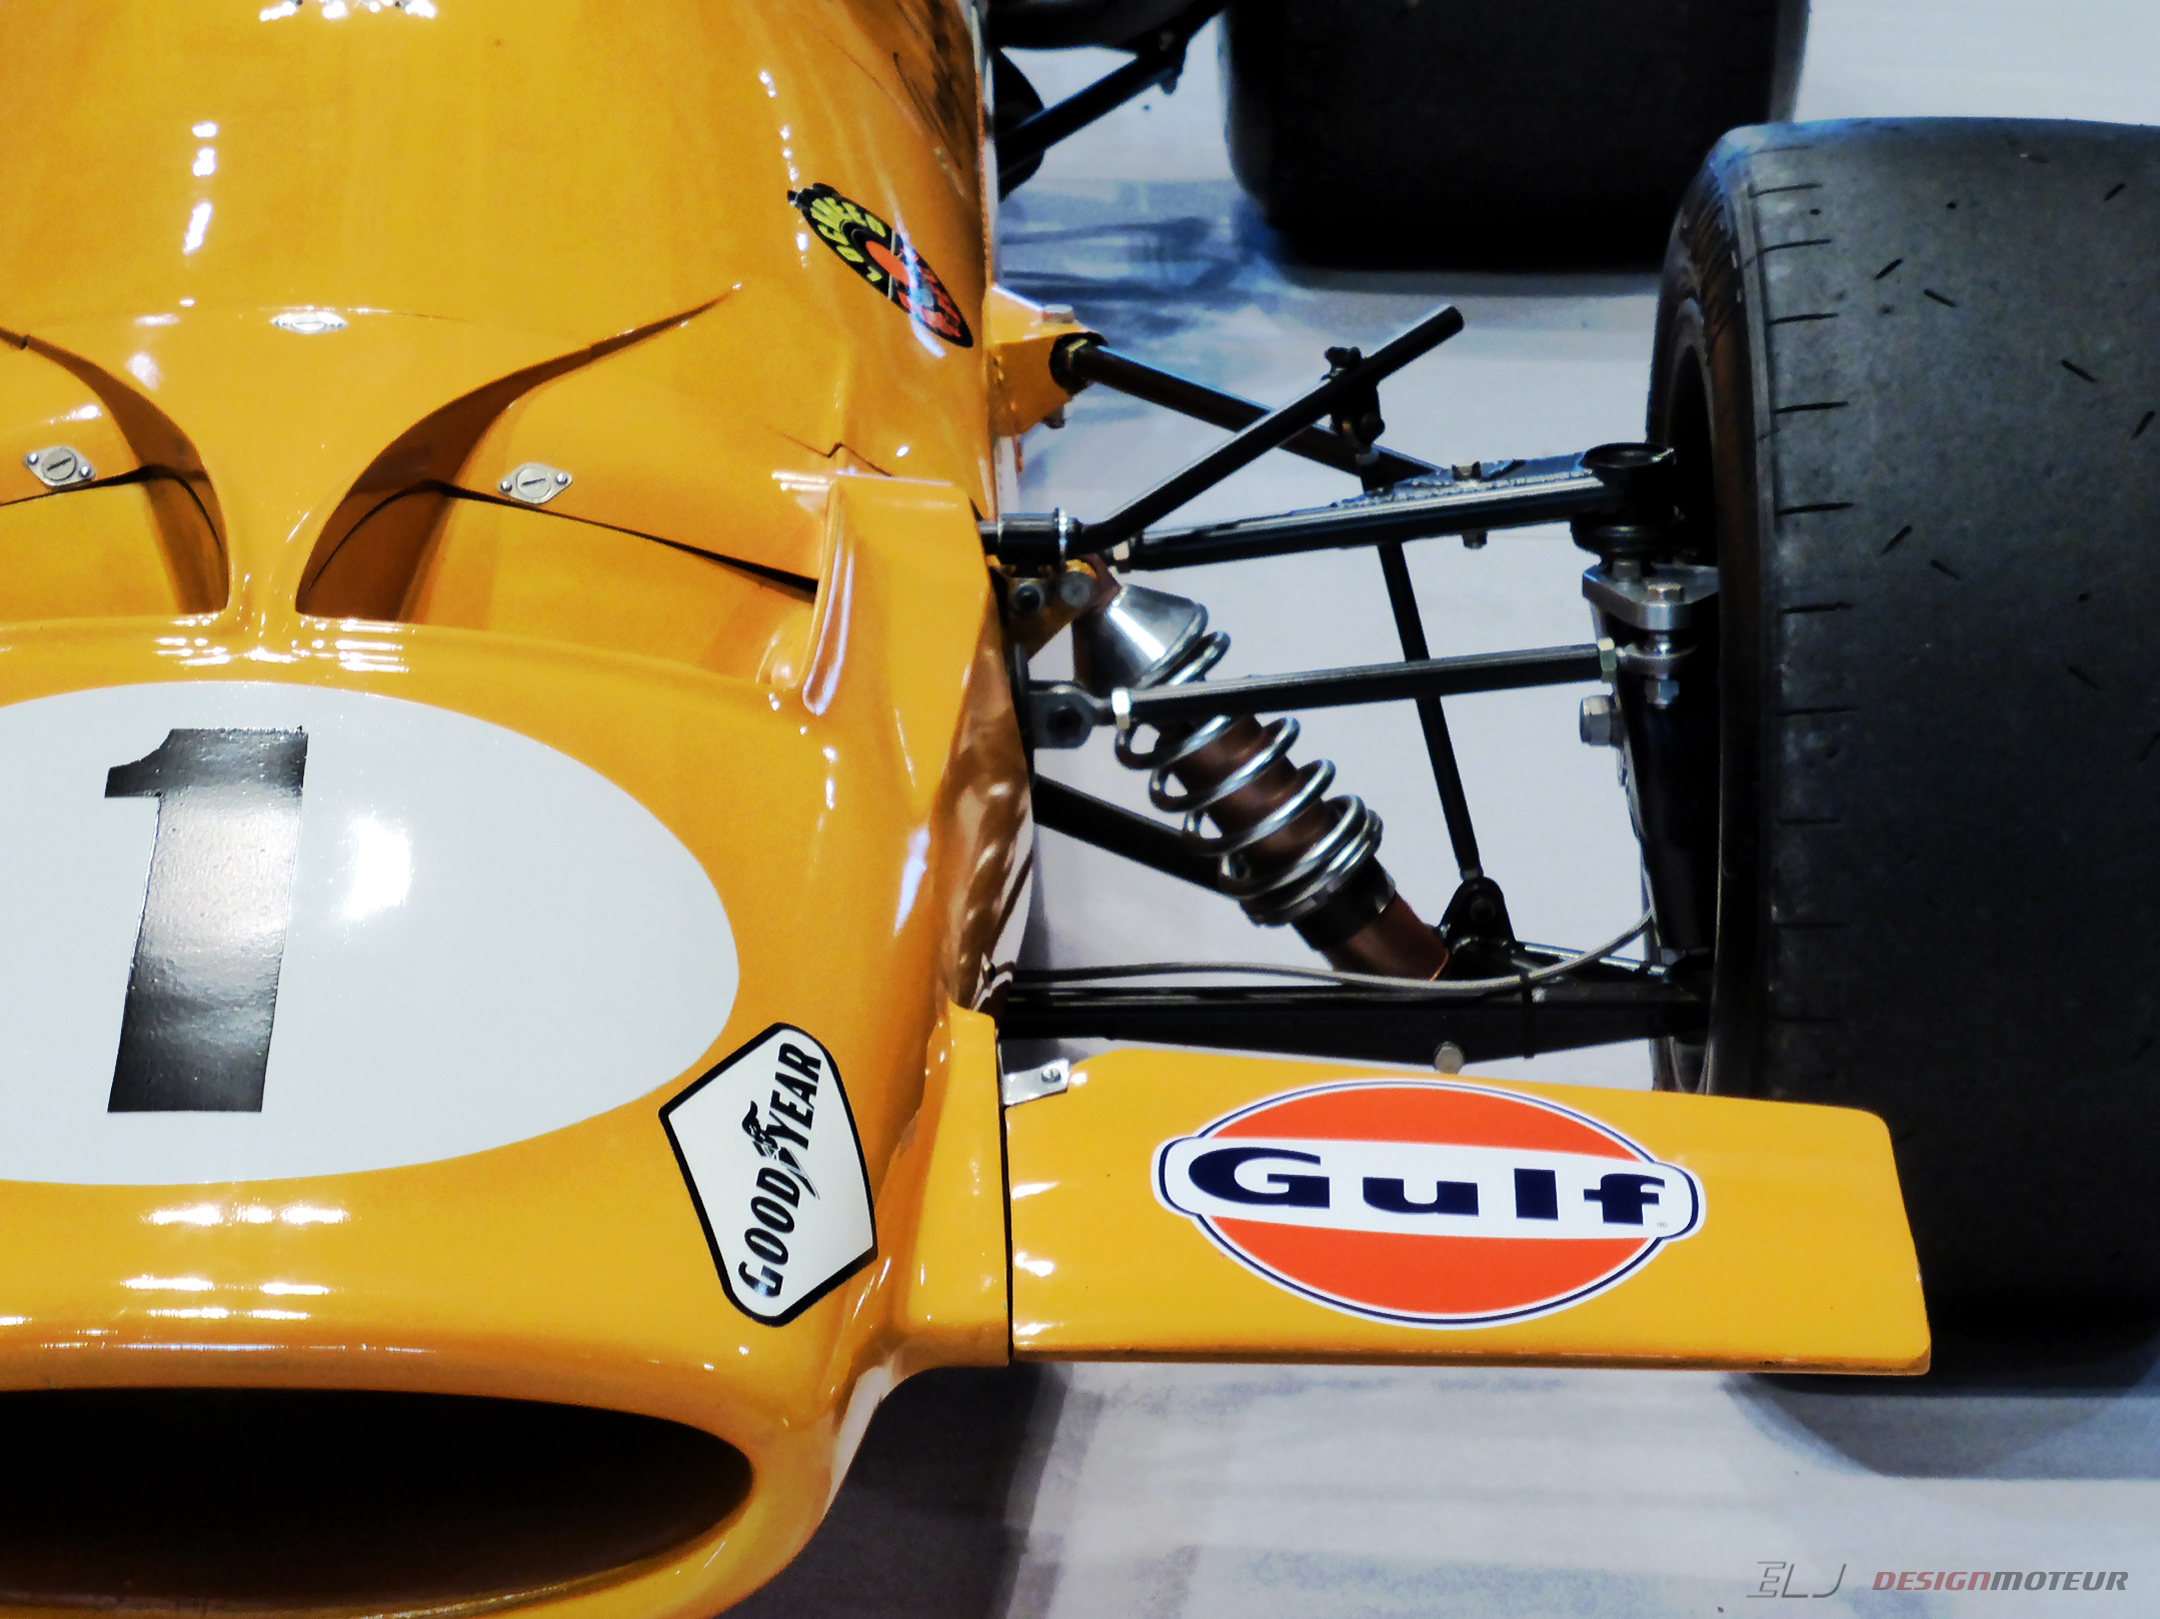 McLaren M7A - 1968 - F1 - front-face side view - Ouest Motors Festival 2018 - photo ELJ DESIGNMOTEUR